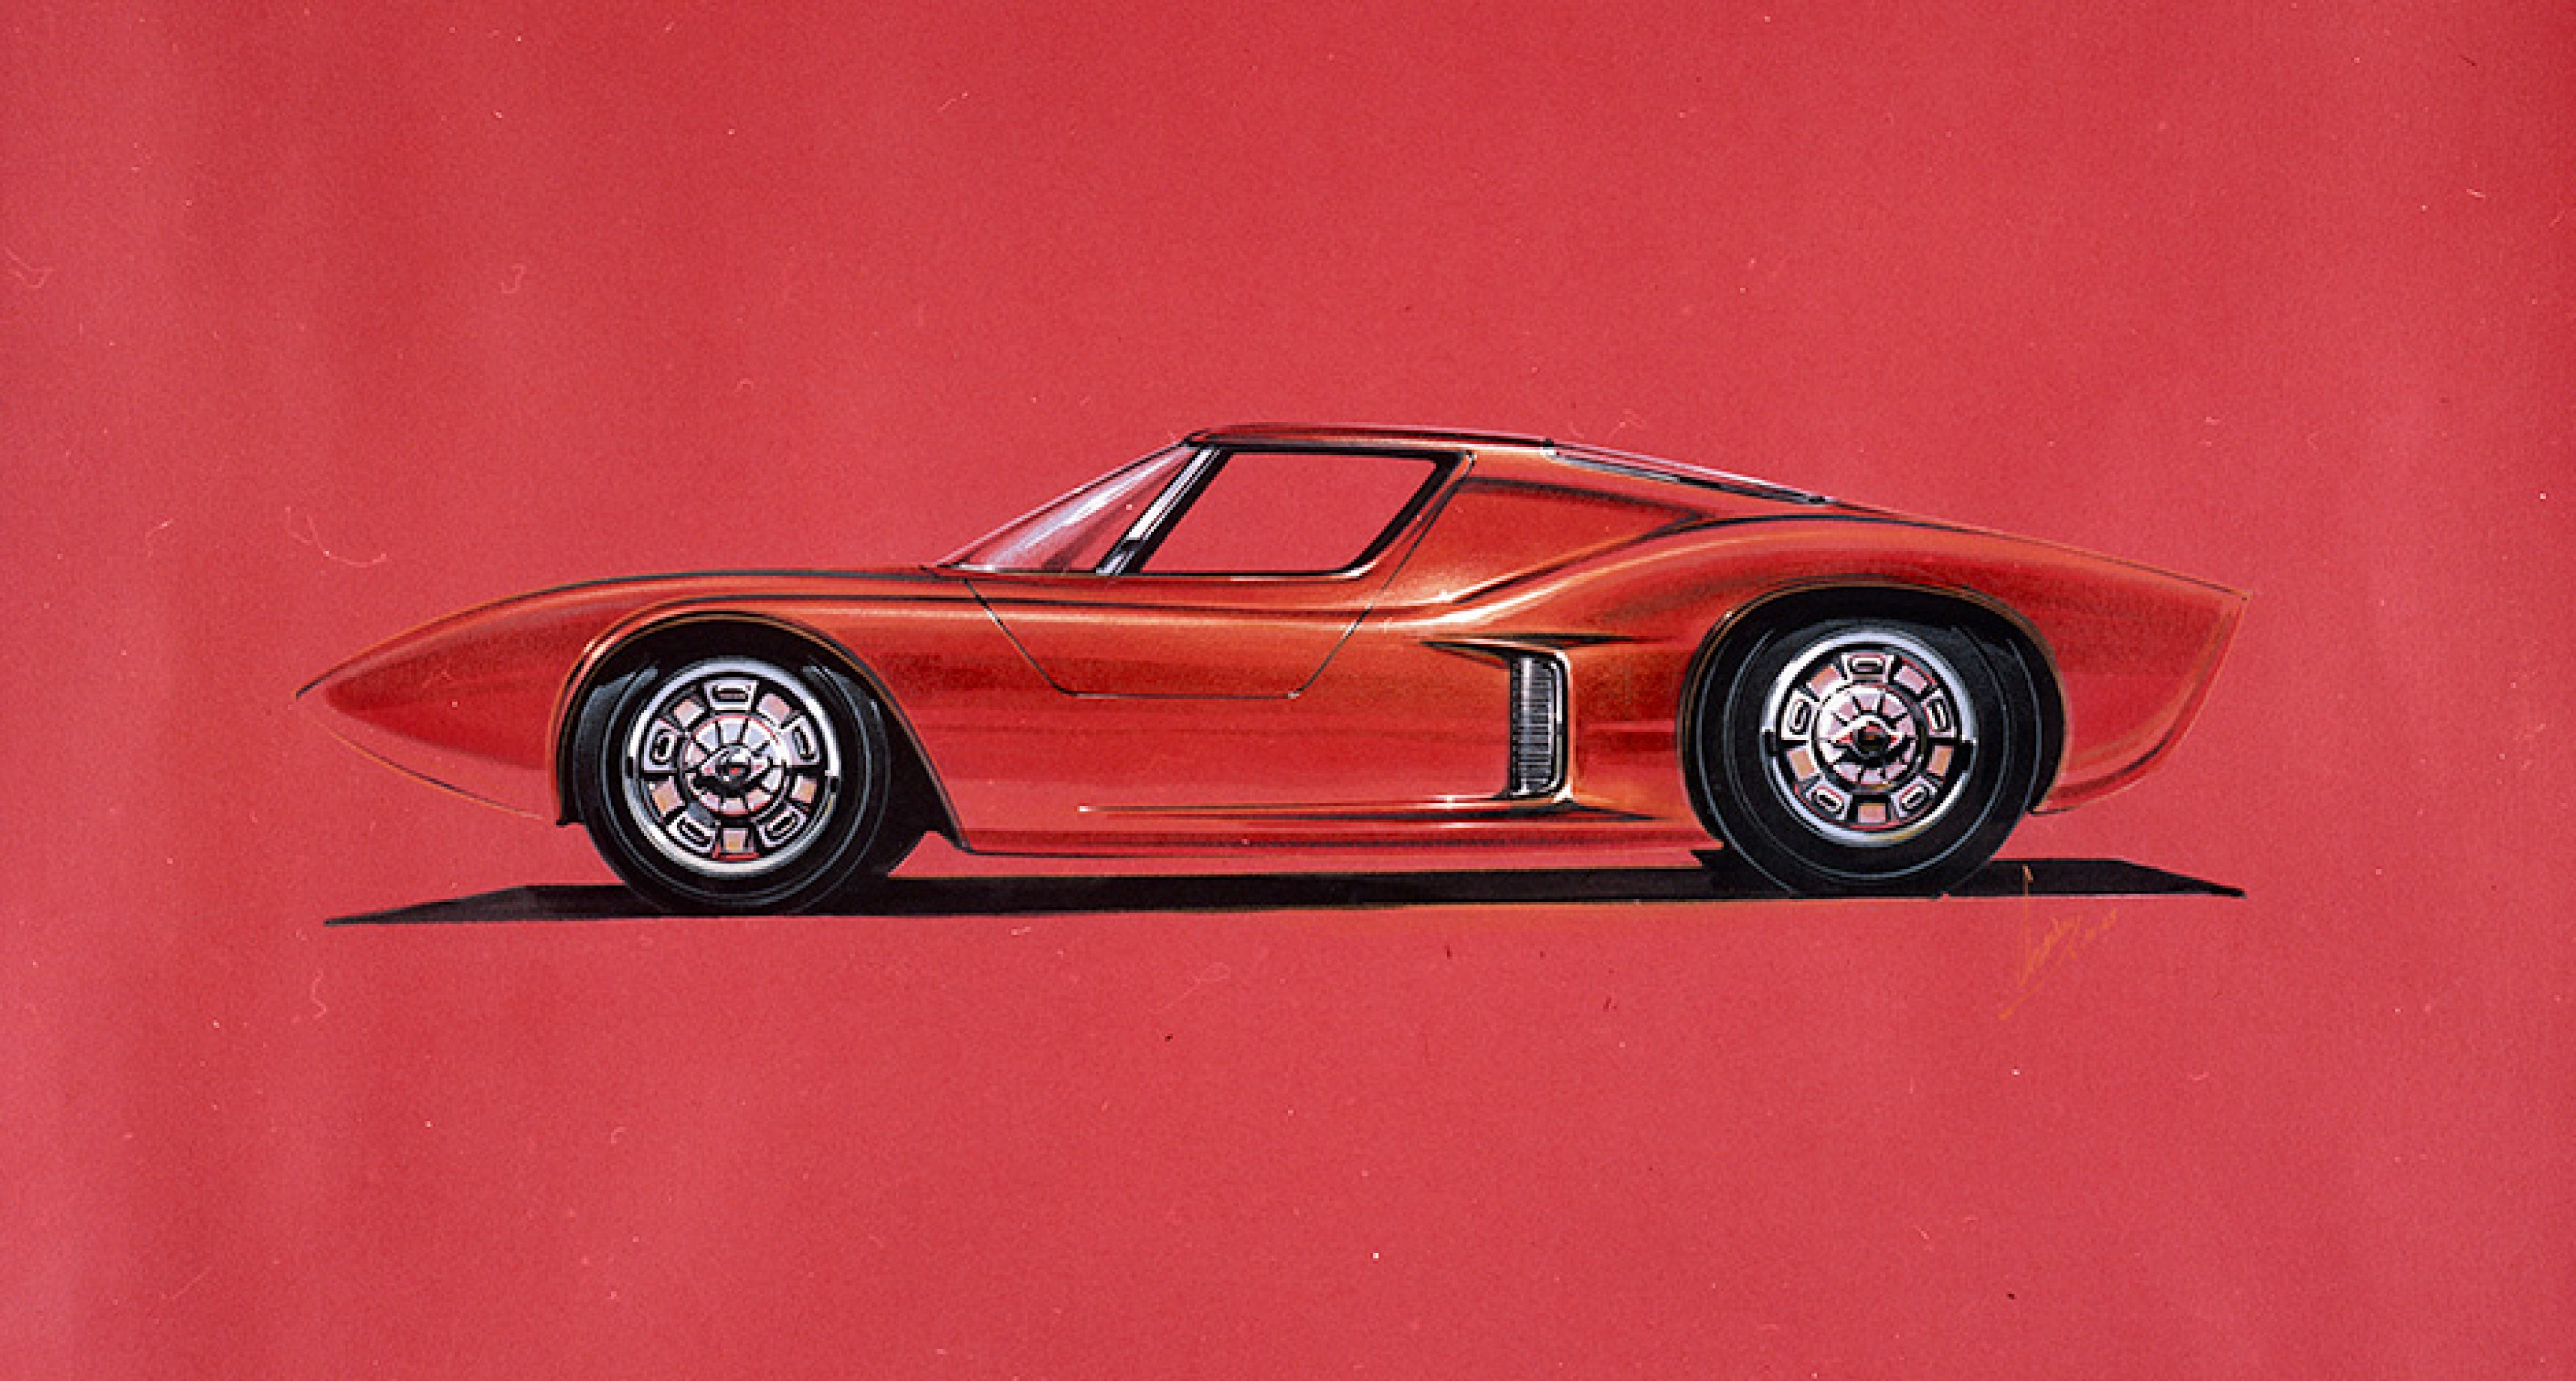 1963 two-seat, mid-engine Mustang concept: The father of the GT40?